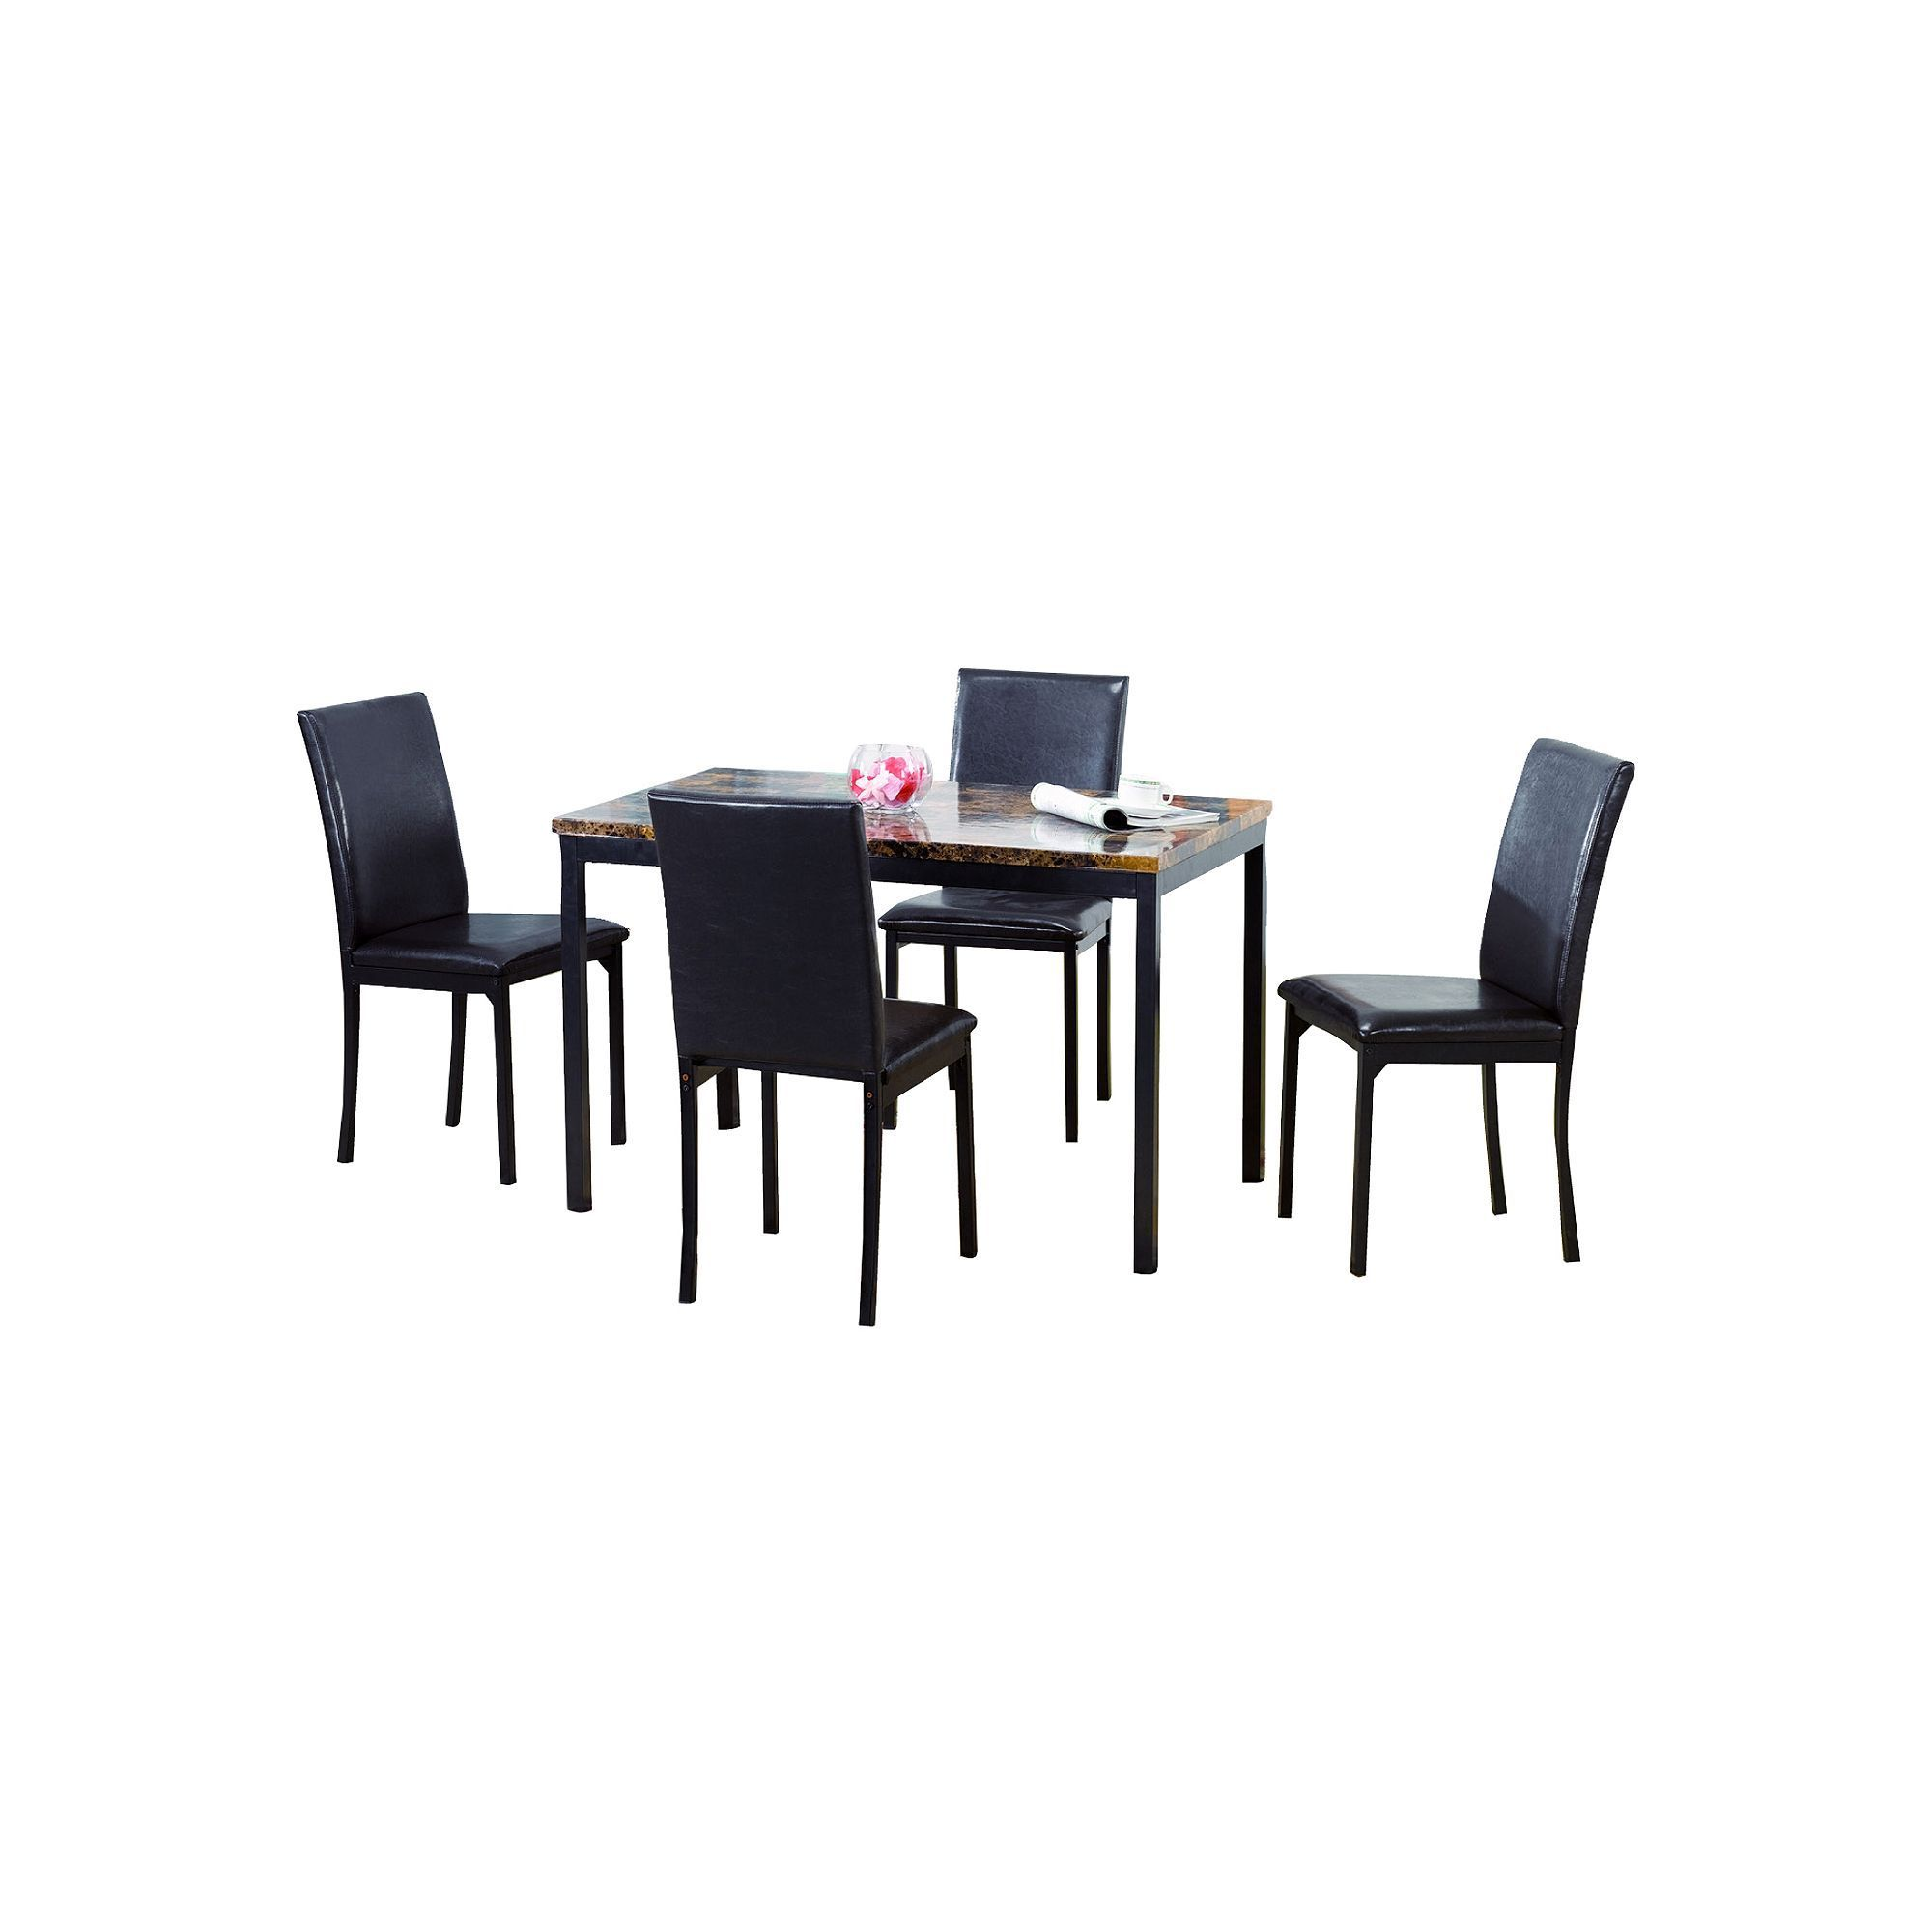 Pc fauxmarble dining table and chairs set black faux marble